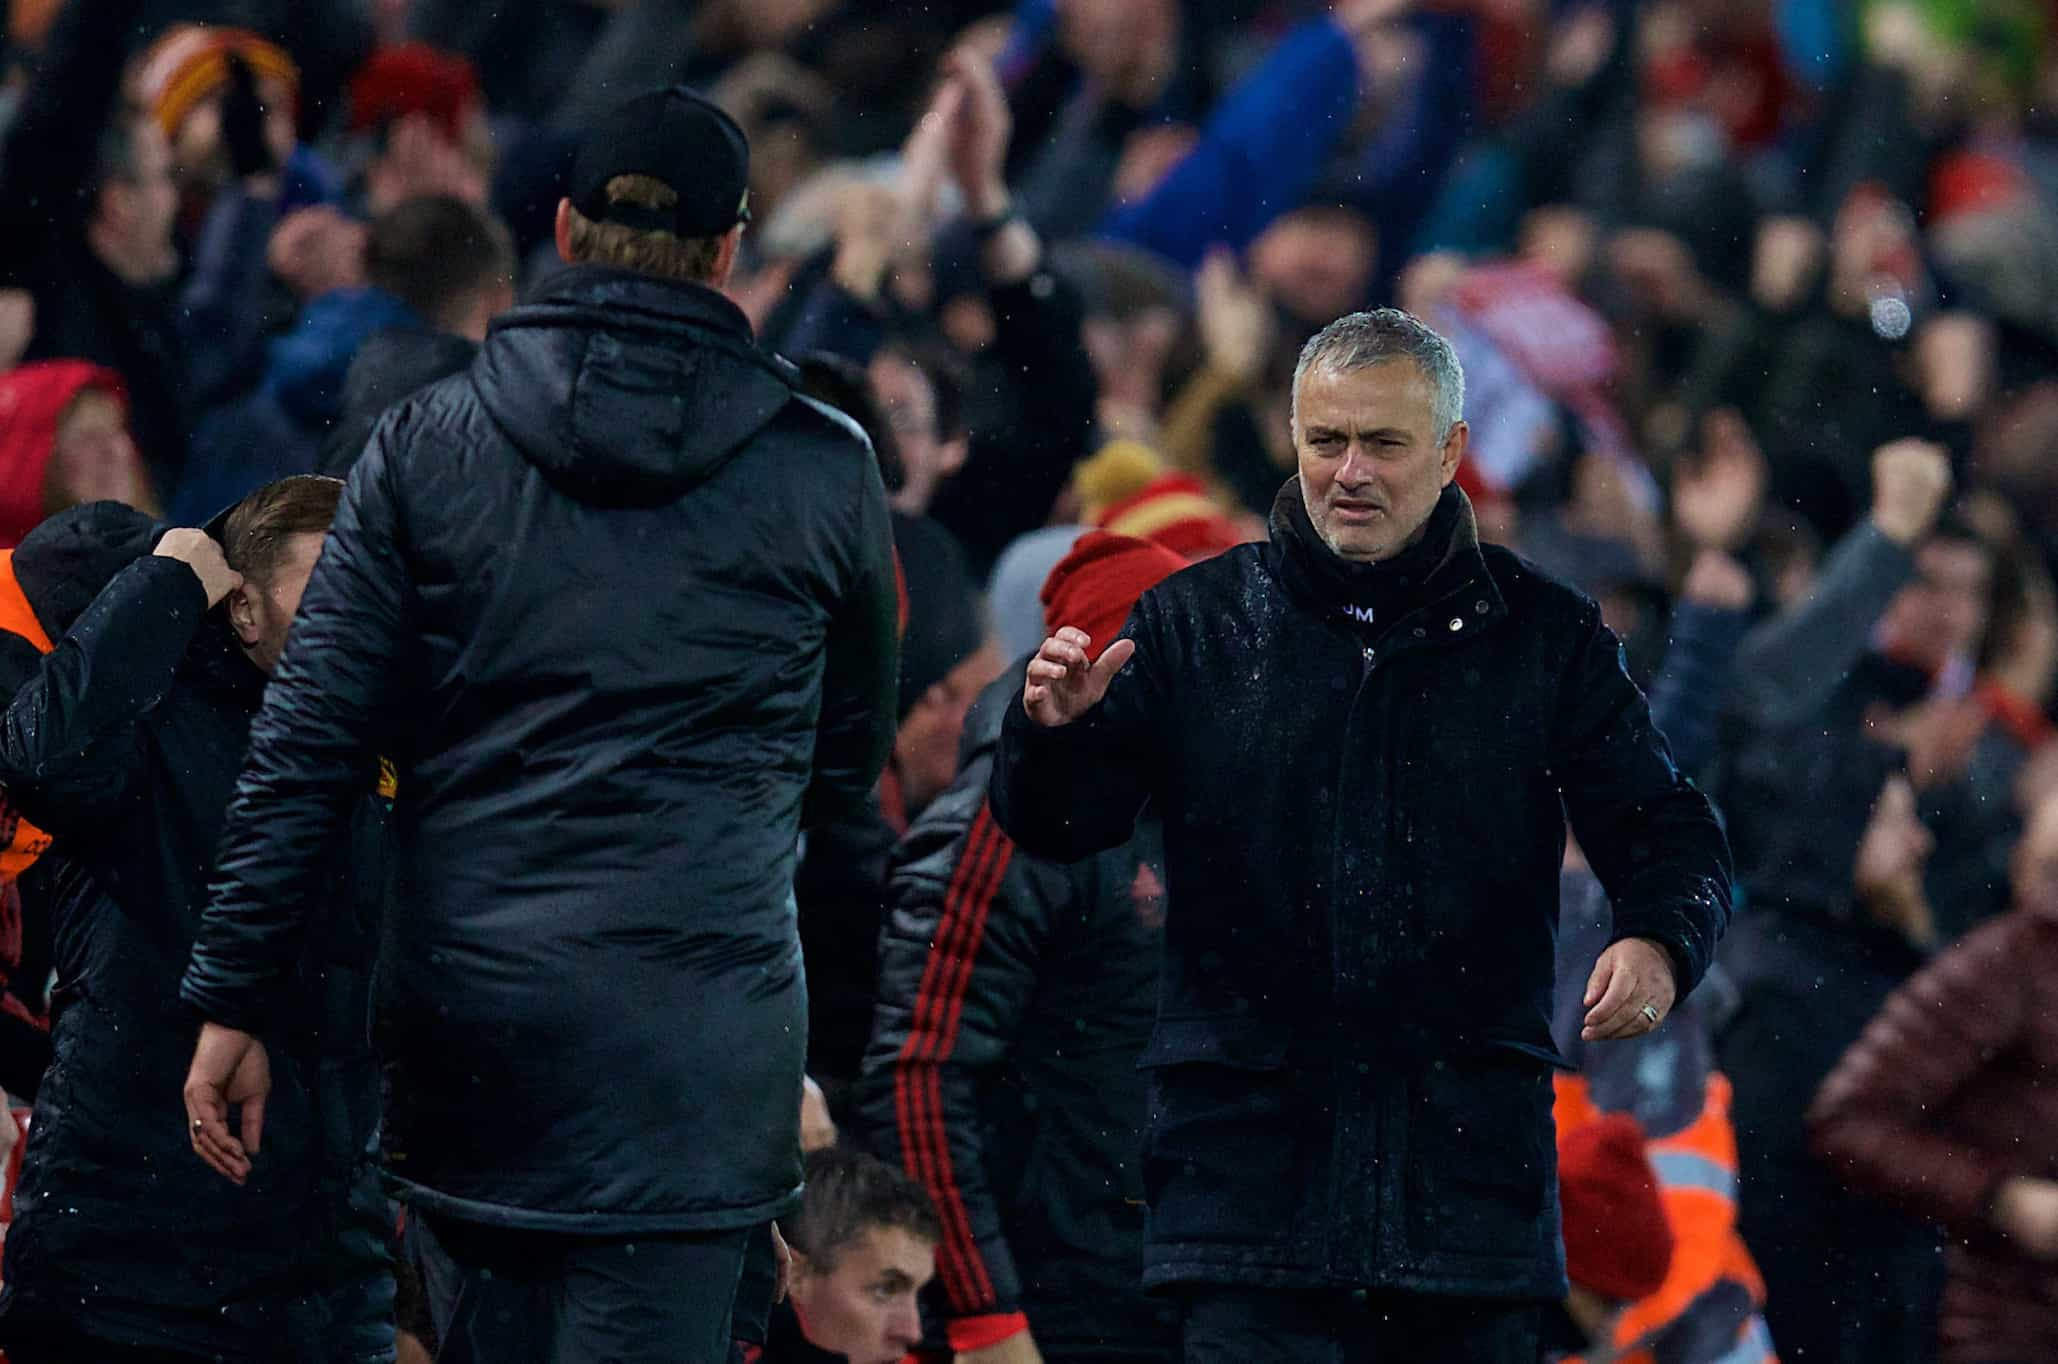 LIVERPOOL, ENGLAND - Sunday, December 16, 2018: Manchester United's manager Jose Mourinho goes to shake hands with Liverpool's manager J¸rgen Klopp after the FA Premier League match between Liverpool FC and Manchester United FC at Anfield. Liverpool won 3-1. (Pic by David Rawcliffe/Propaganda)